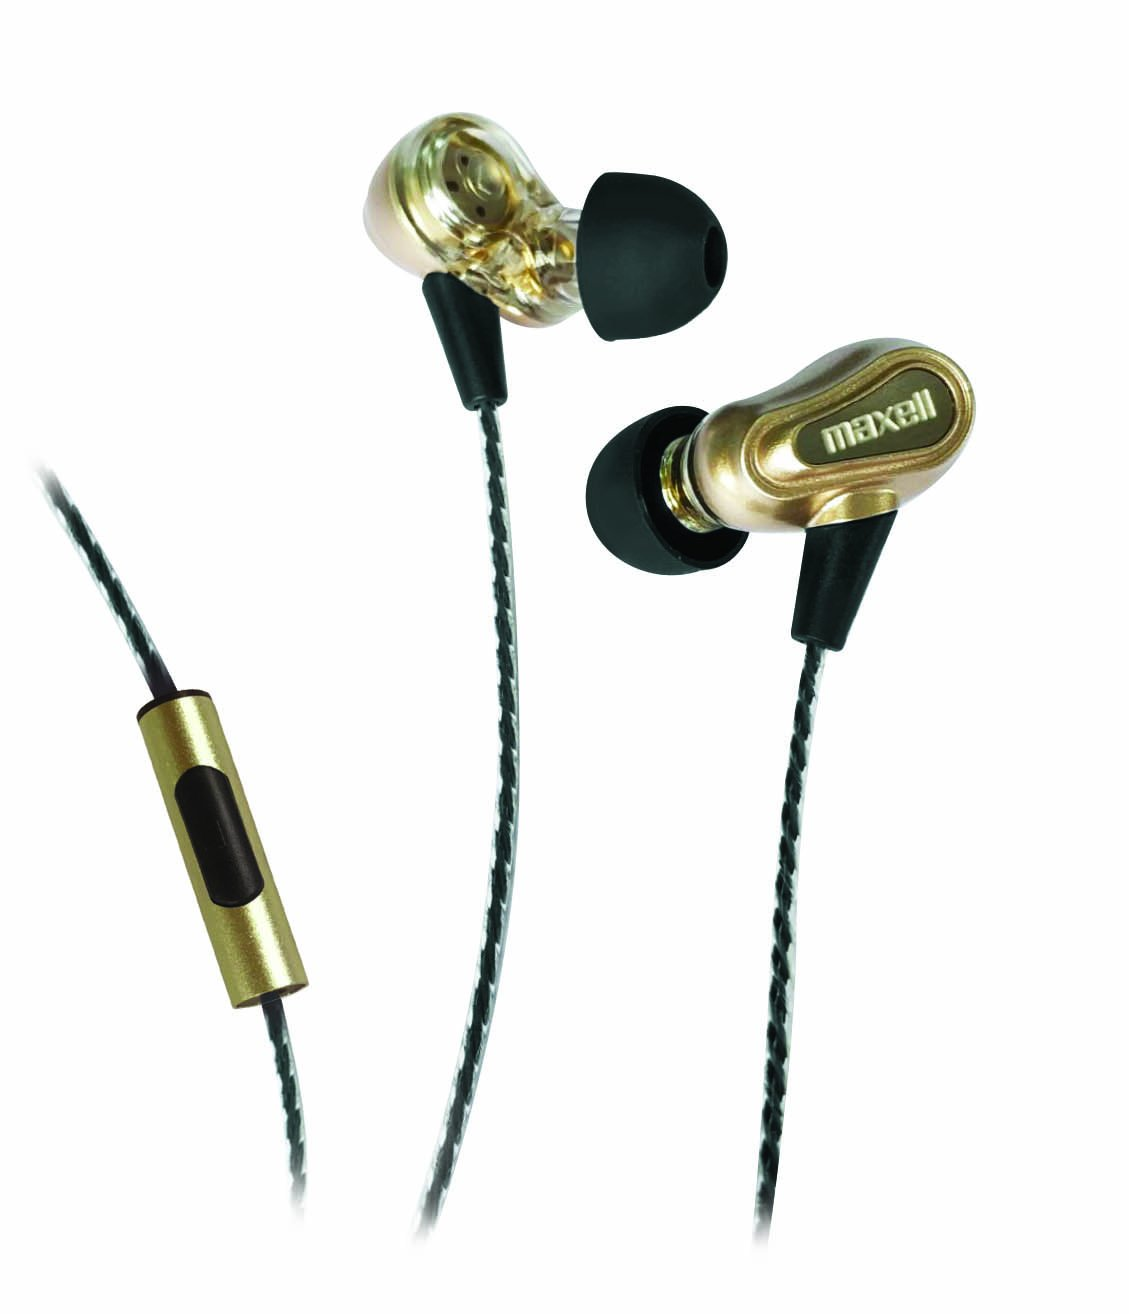 Maxell 199771 Hands Free Calling Extra Bass Boost Dual Driver Earbuds with Mic & Strong Twisted Cable & Metal Earbud Casing (Gold)